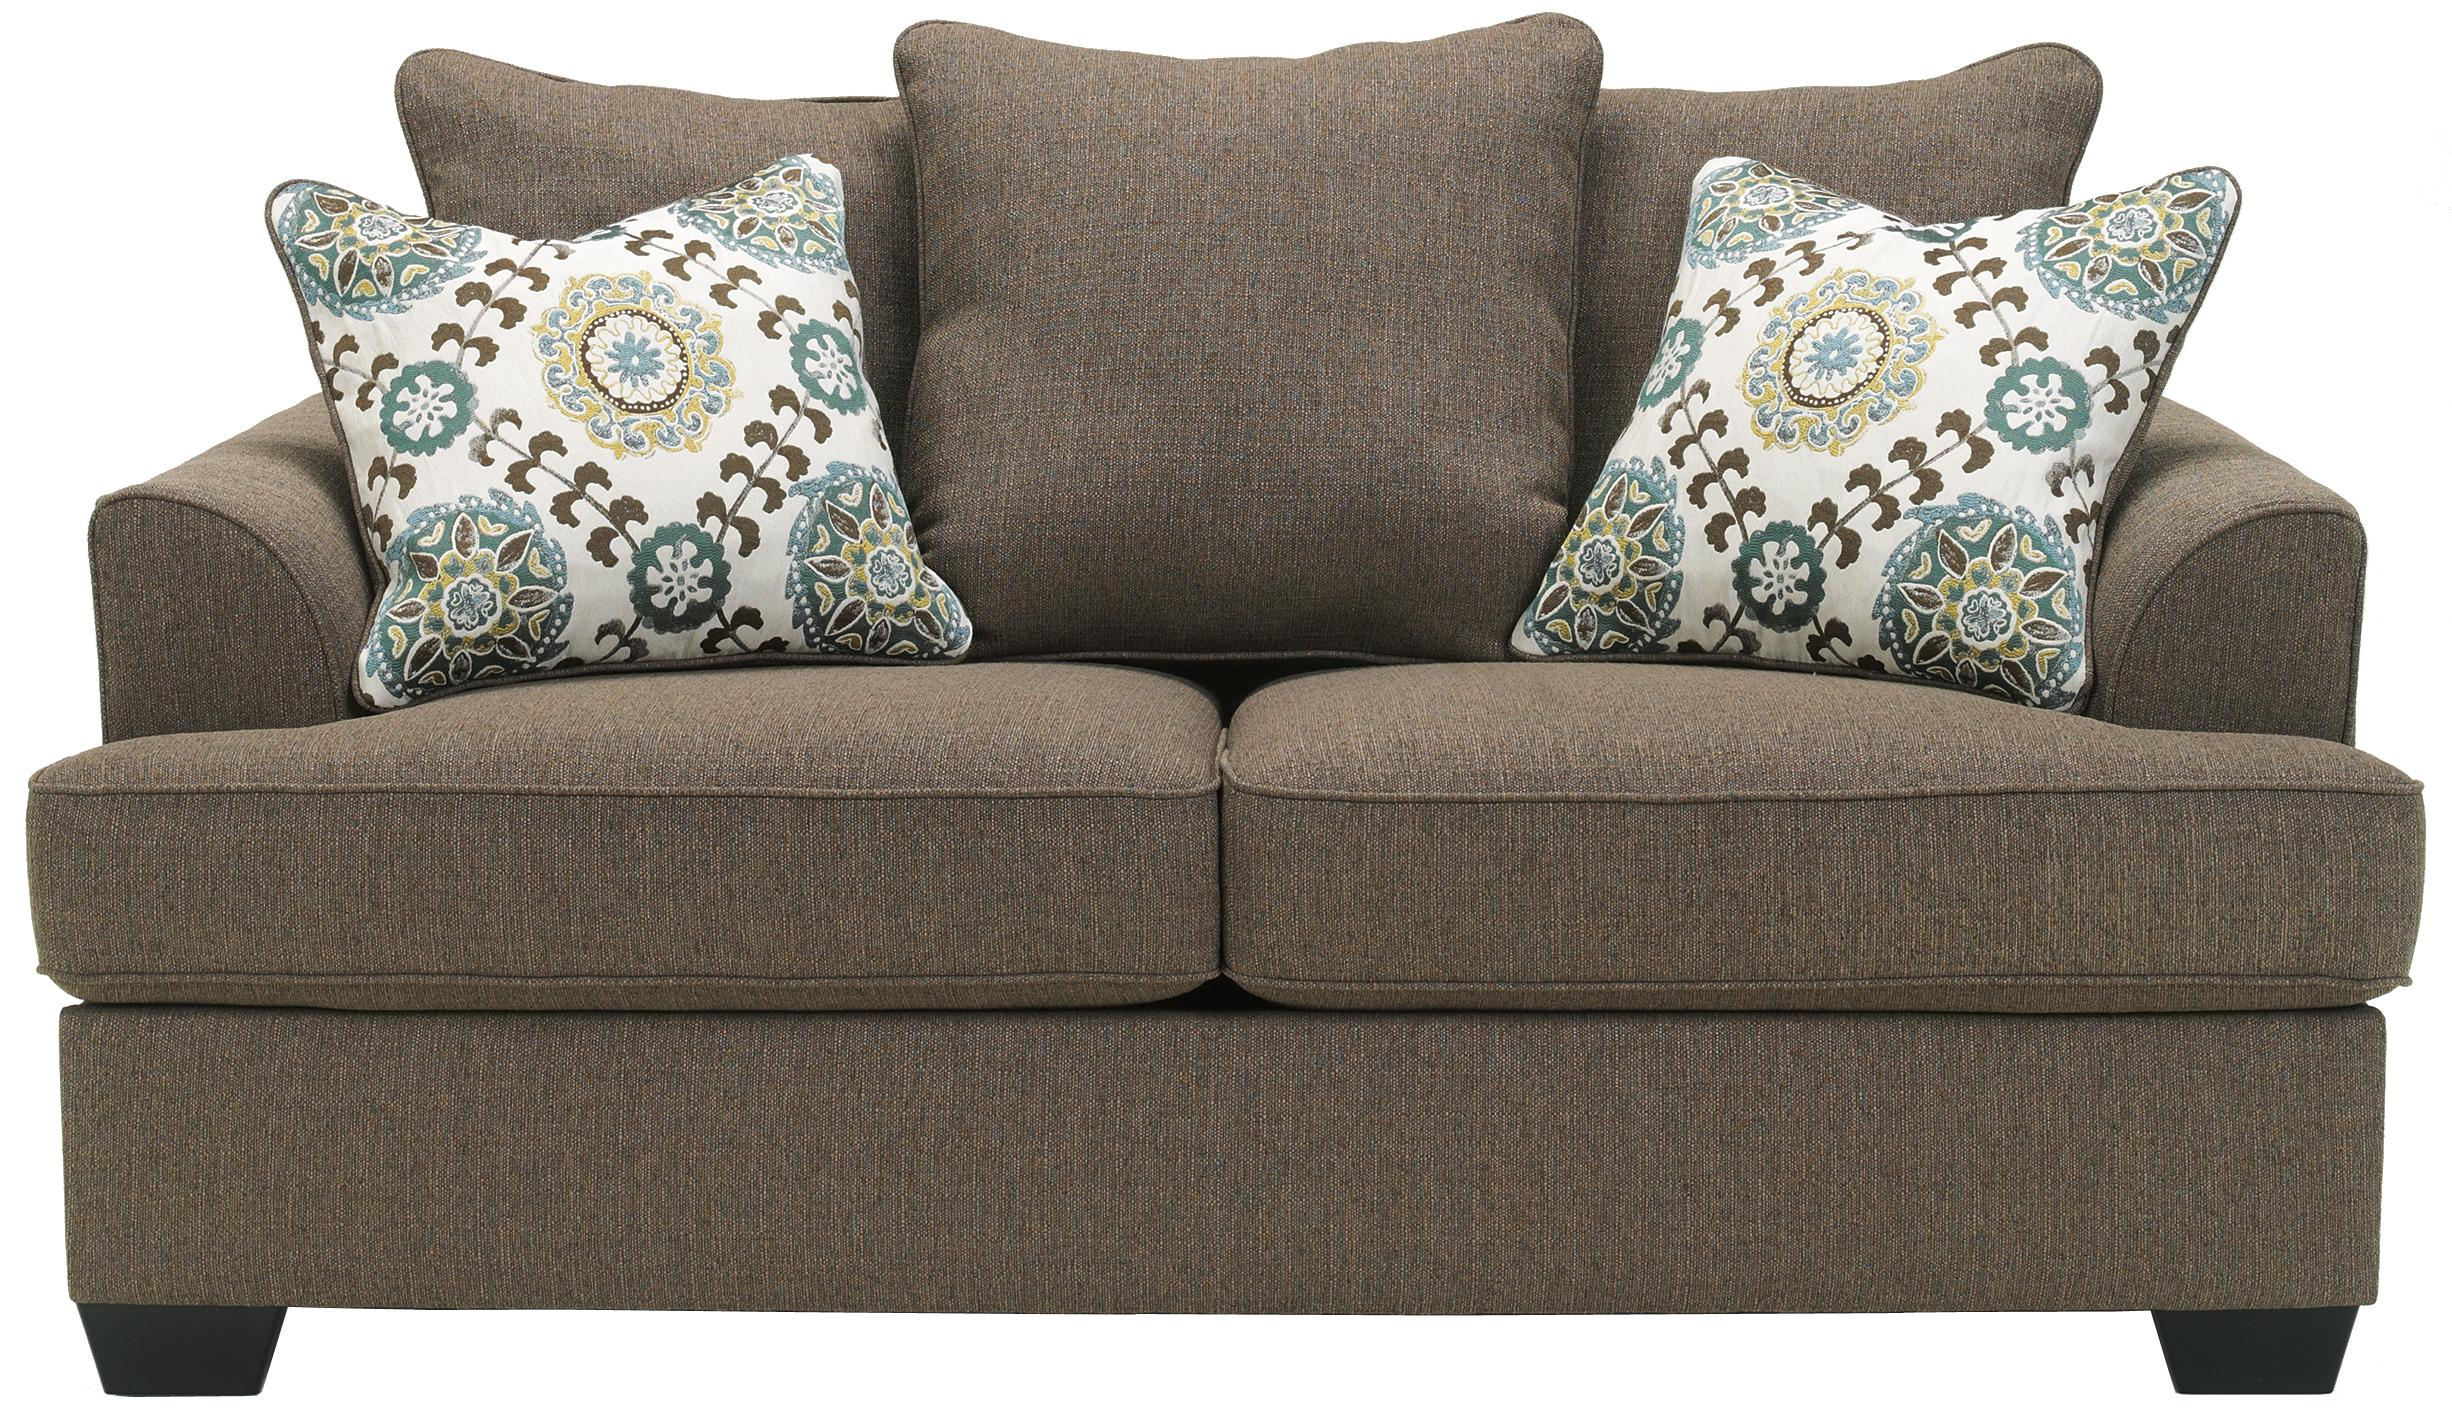 Ashley Furniture Corley - Slate Loveseat - Item Number: 2880035